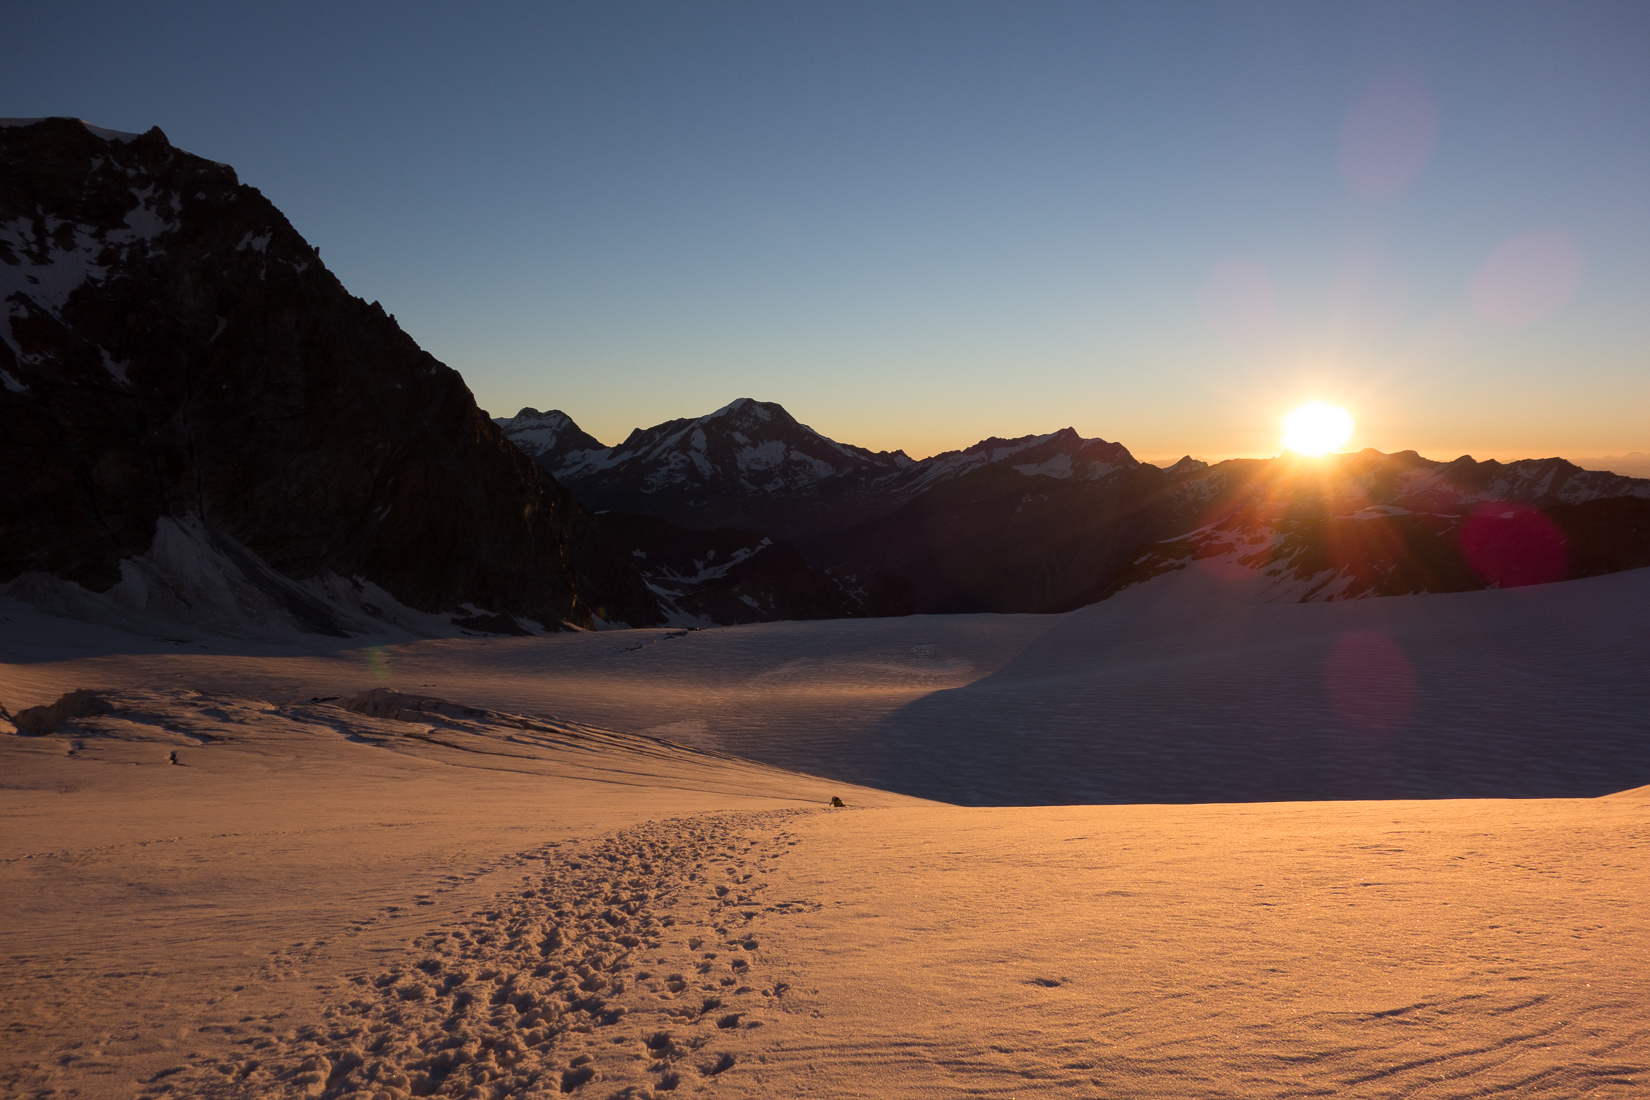 Sunrise on the Allalin glacier